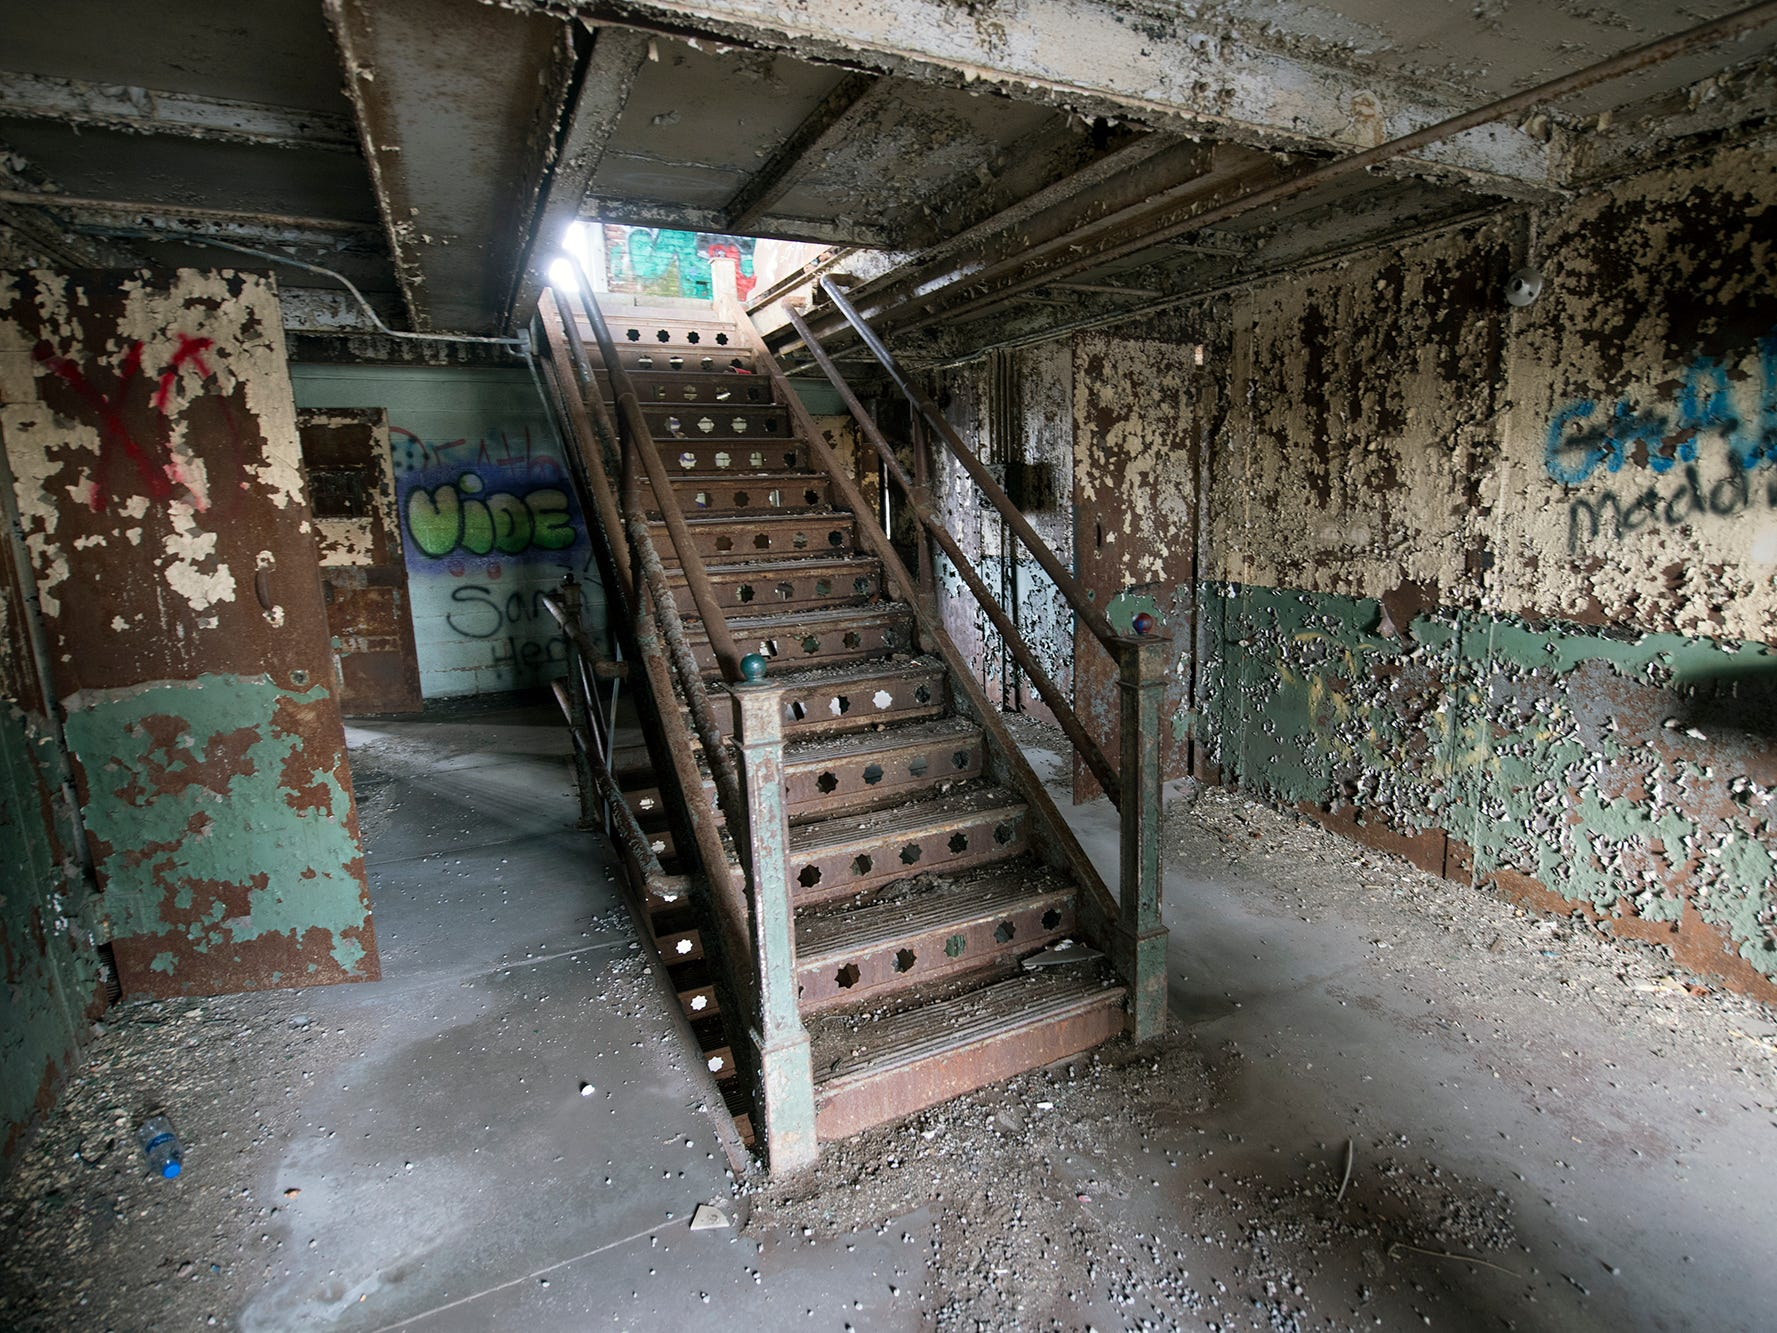 The central staircase rises up through the inside of the old York County Prison.